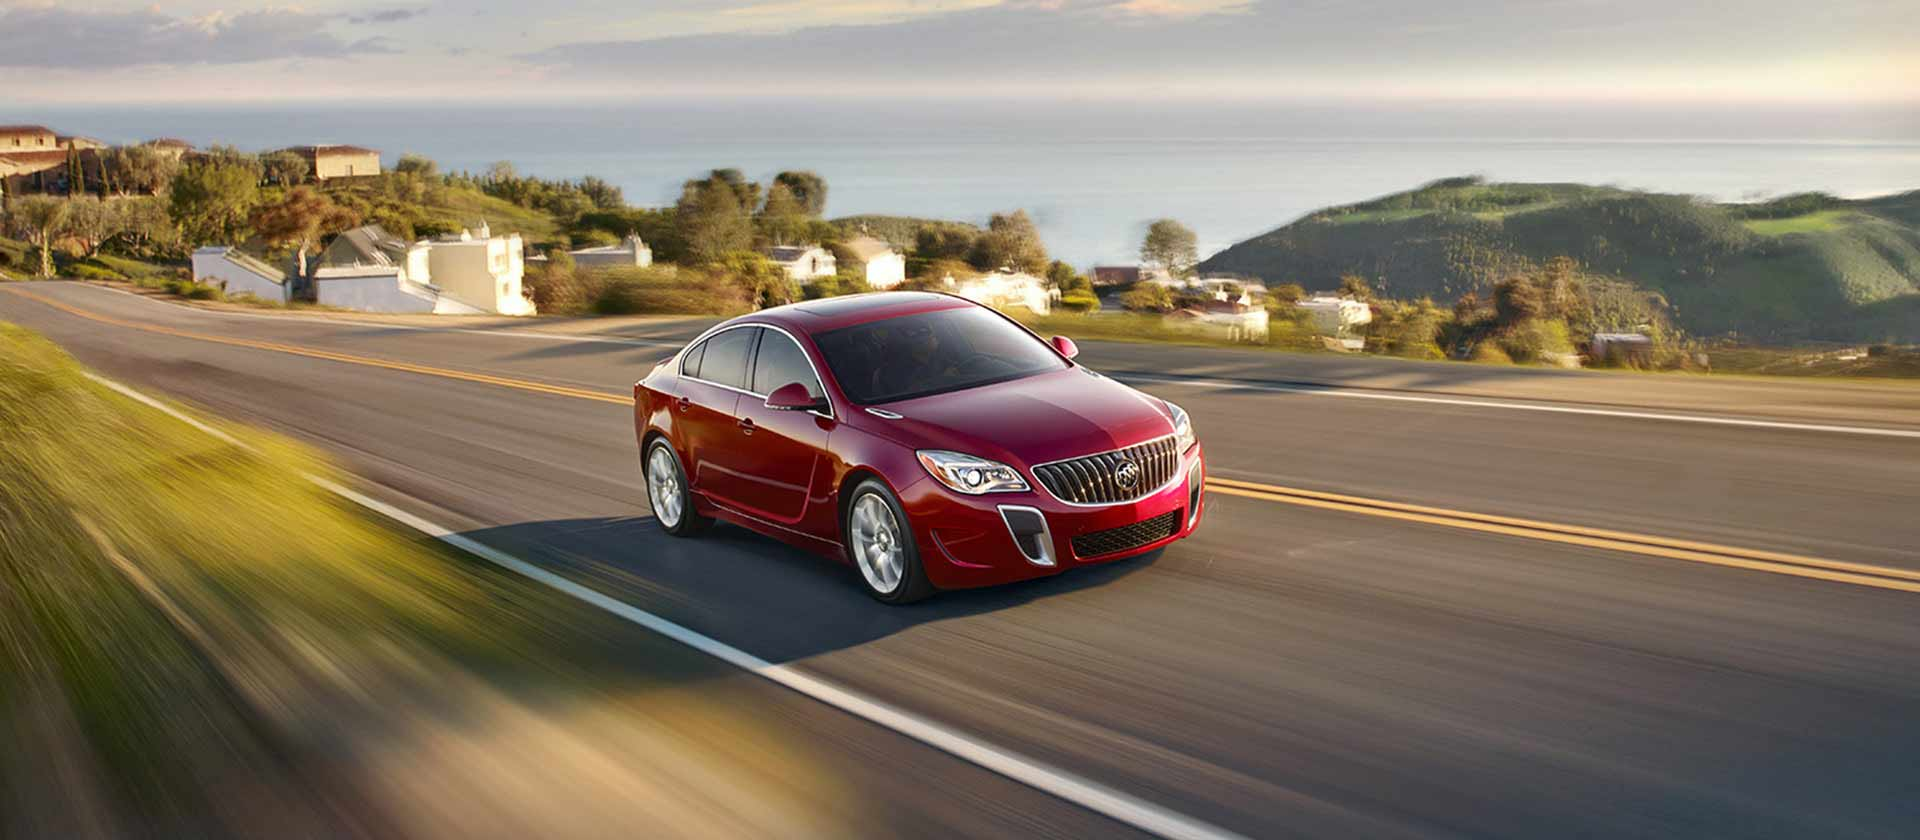 Buick Regal: What to Do with Used Oil